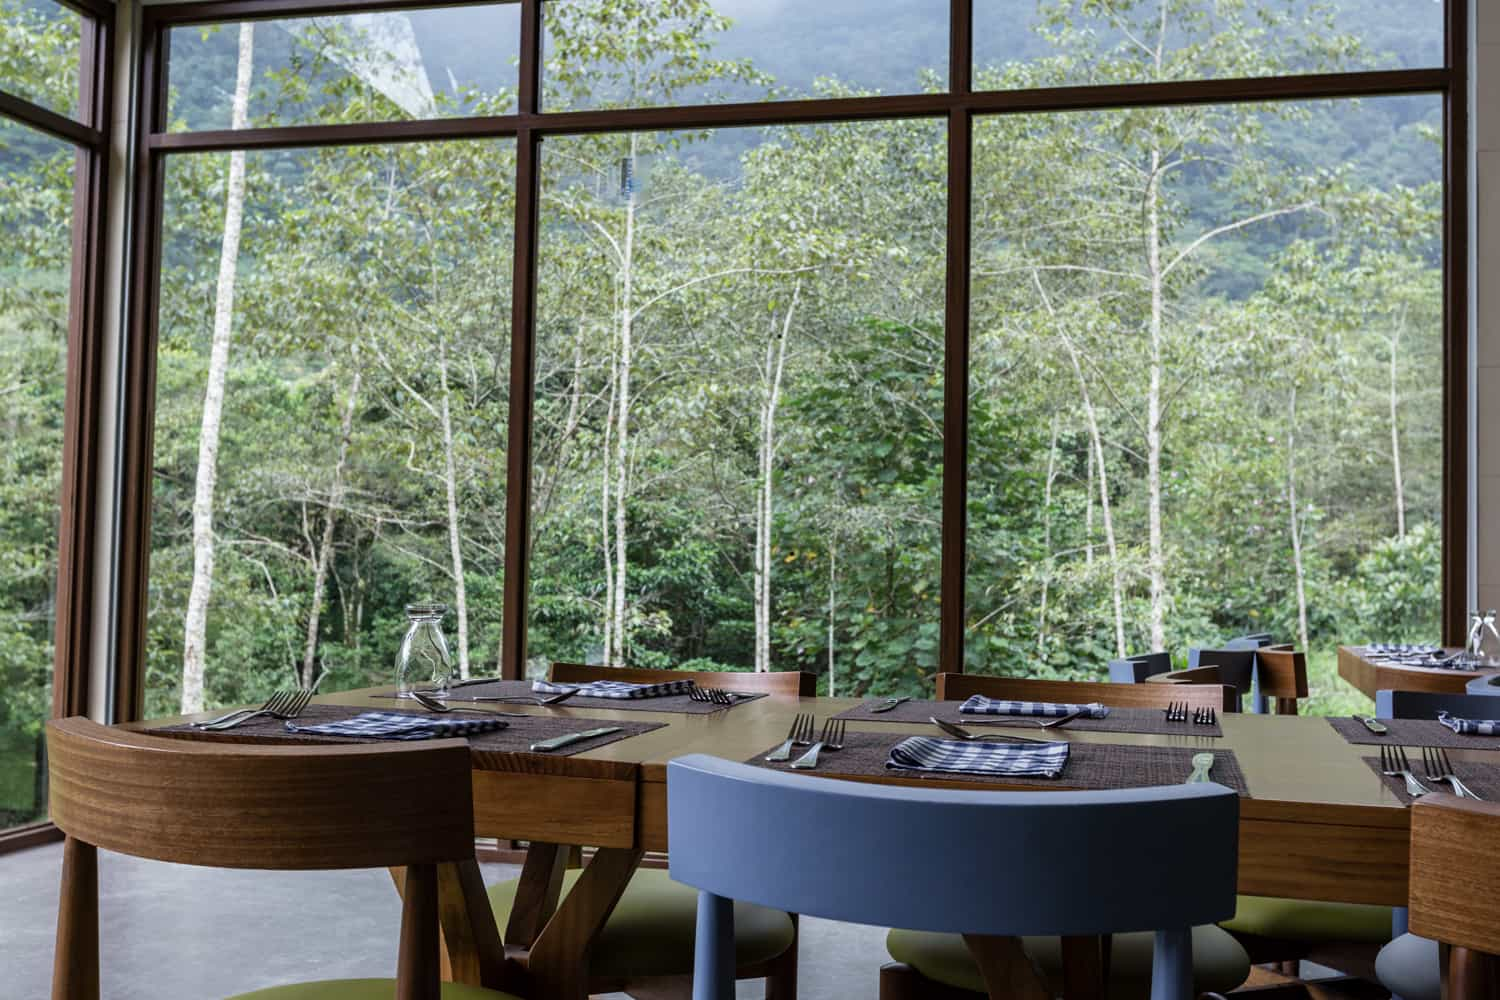 Views of cloud forest from table in restaurant for wedding events.